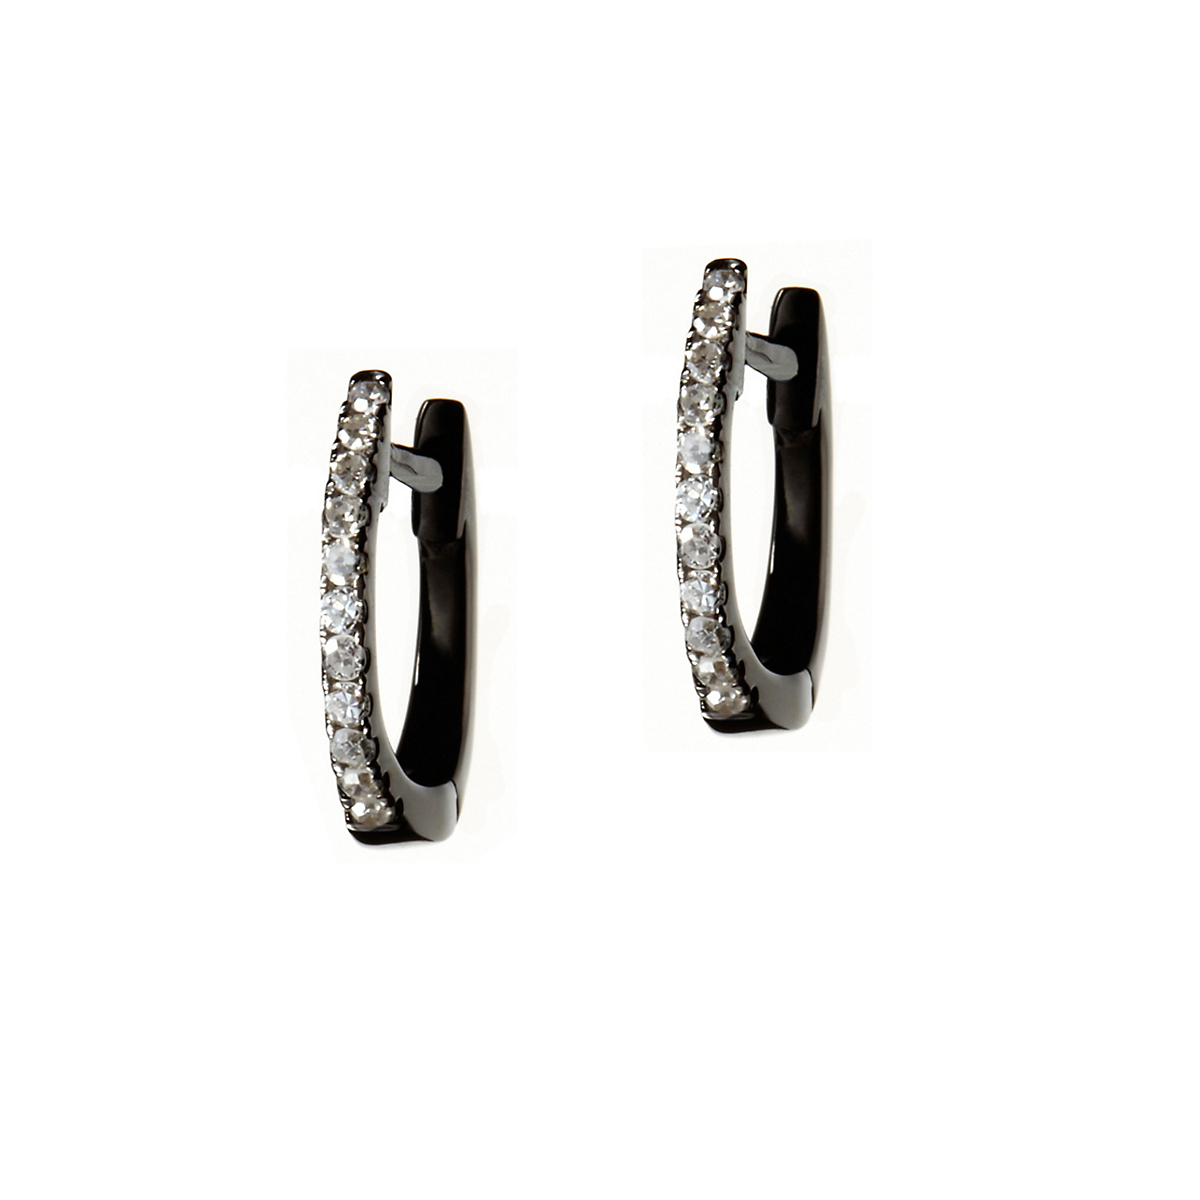 Nikki Baker Lusso Black Gold & Diamond Mini Hoop Earrings